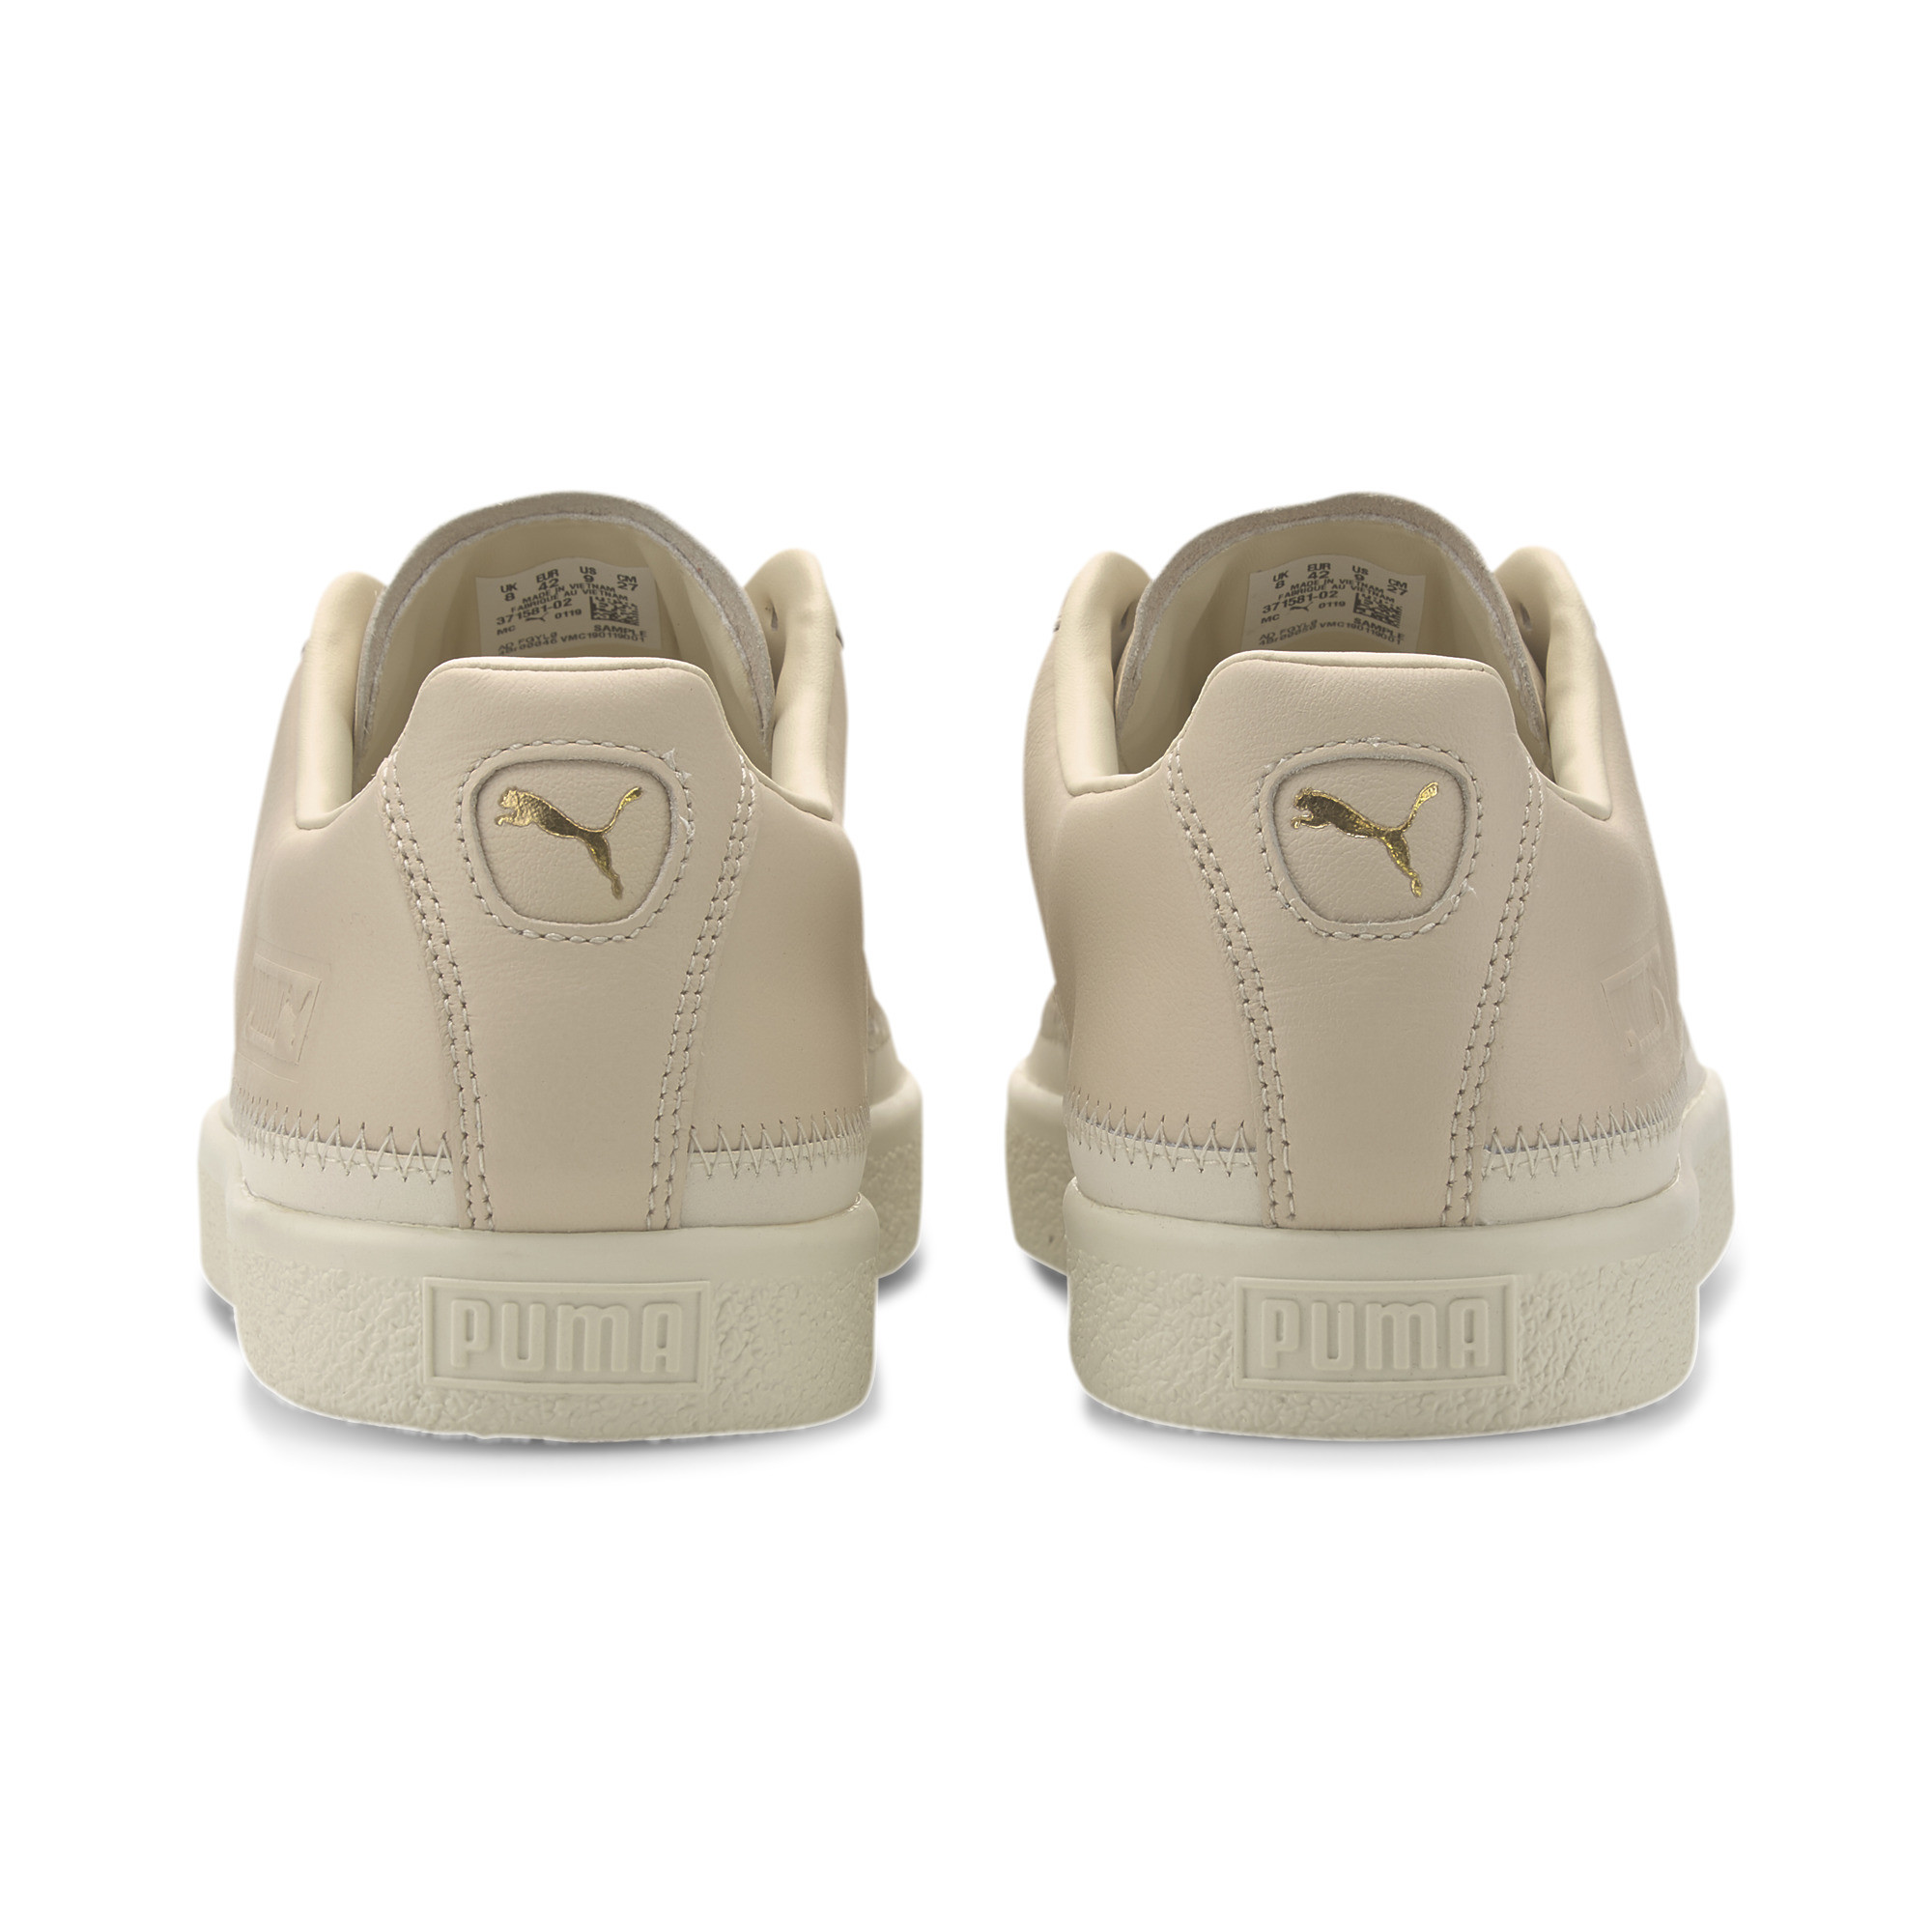 PUMA-Men-039-s-Basket-Trim-PRM-Sneakers thumbnail 10